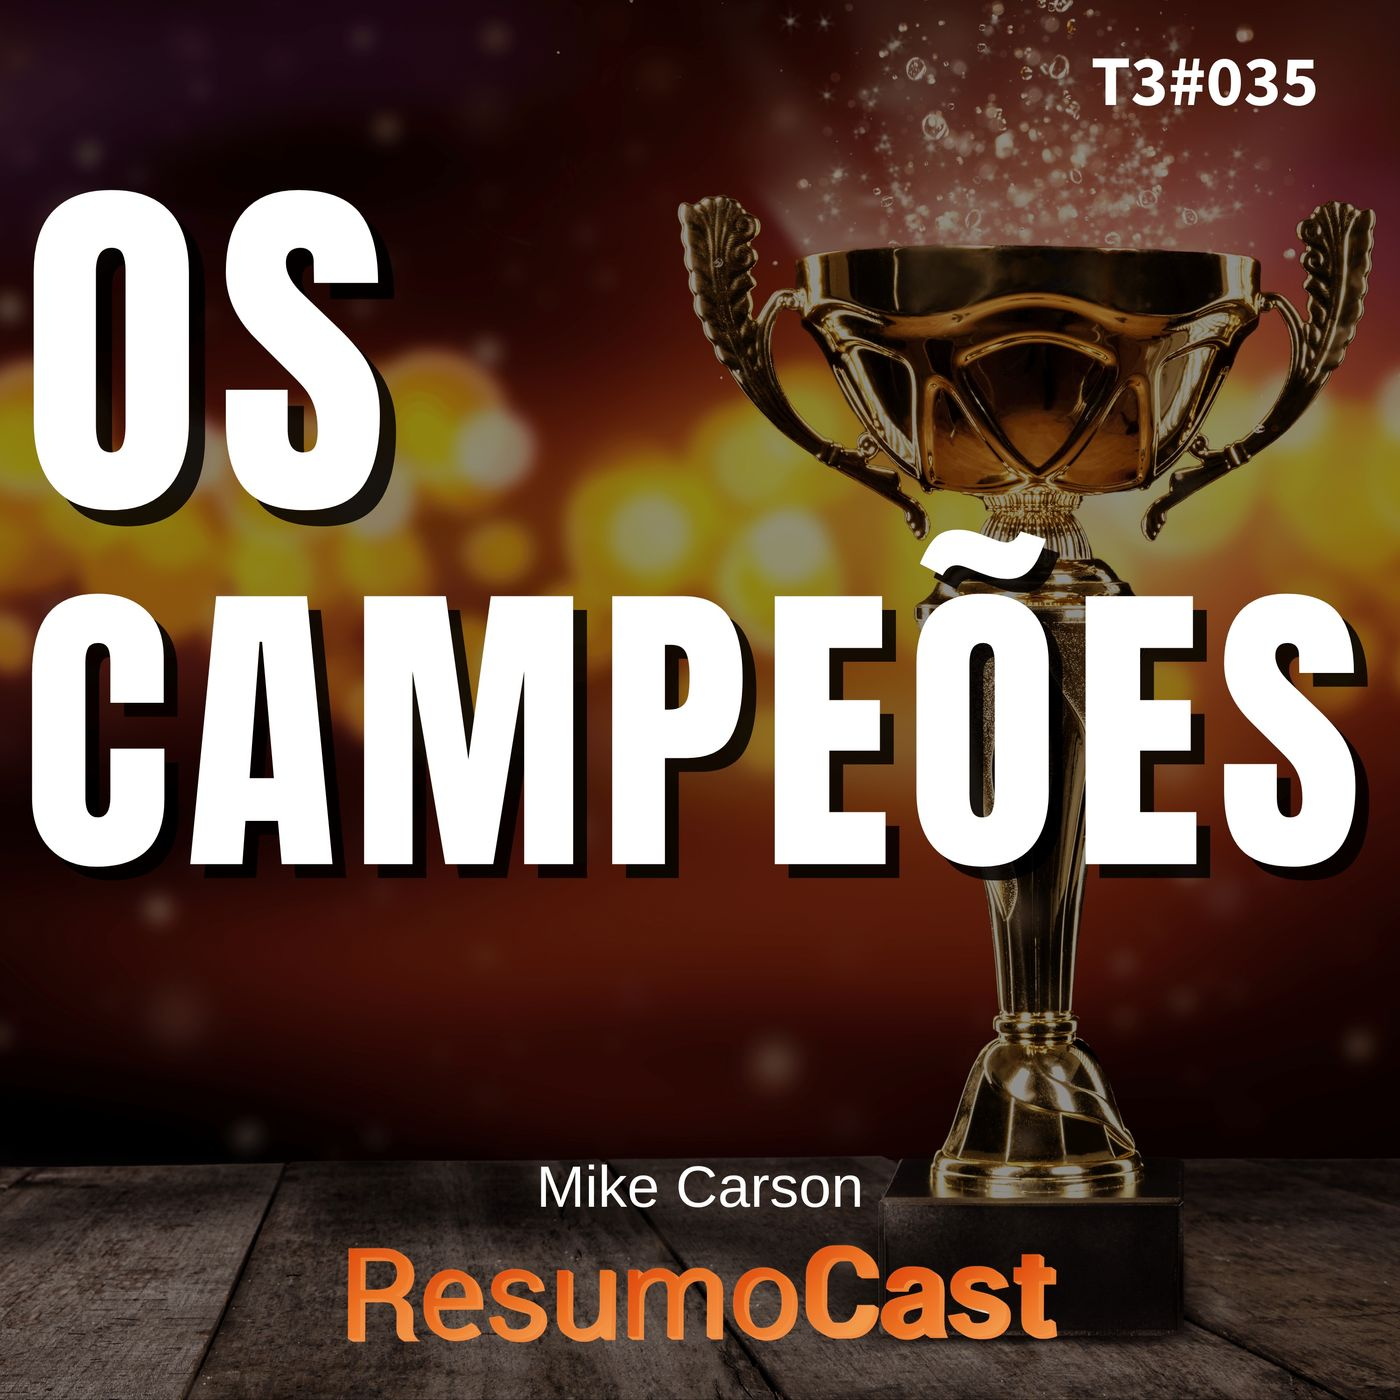 T3#035 Os campeões | Mike Carson